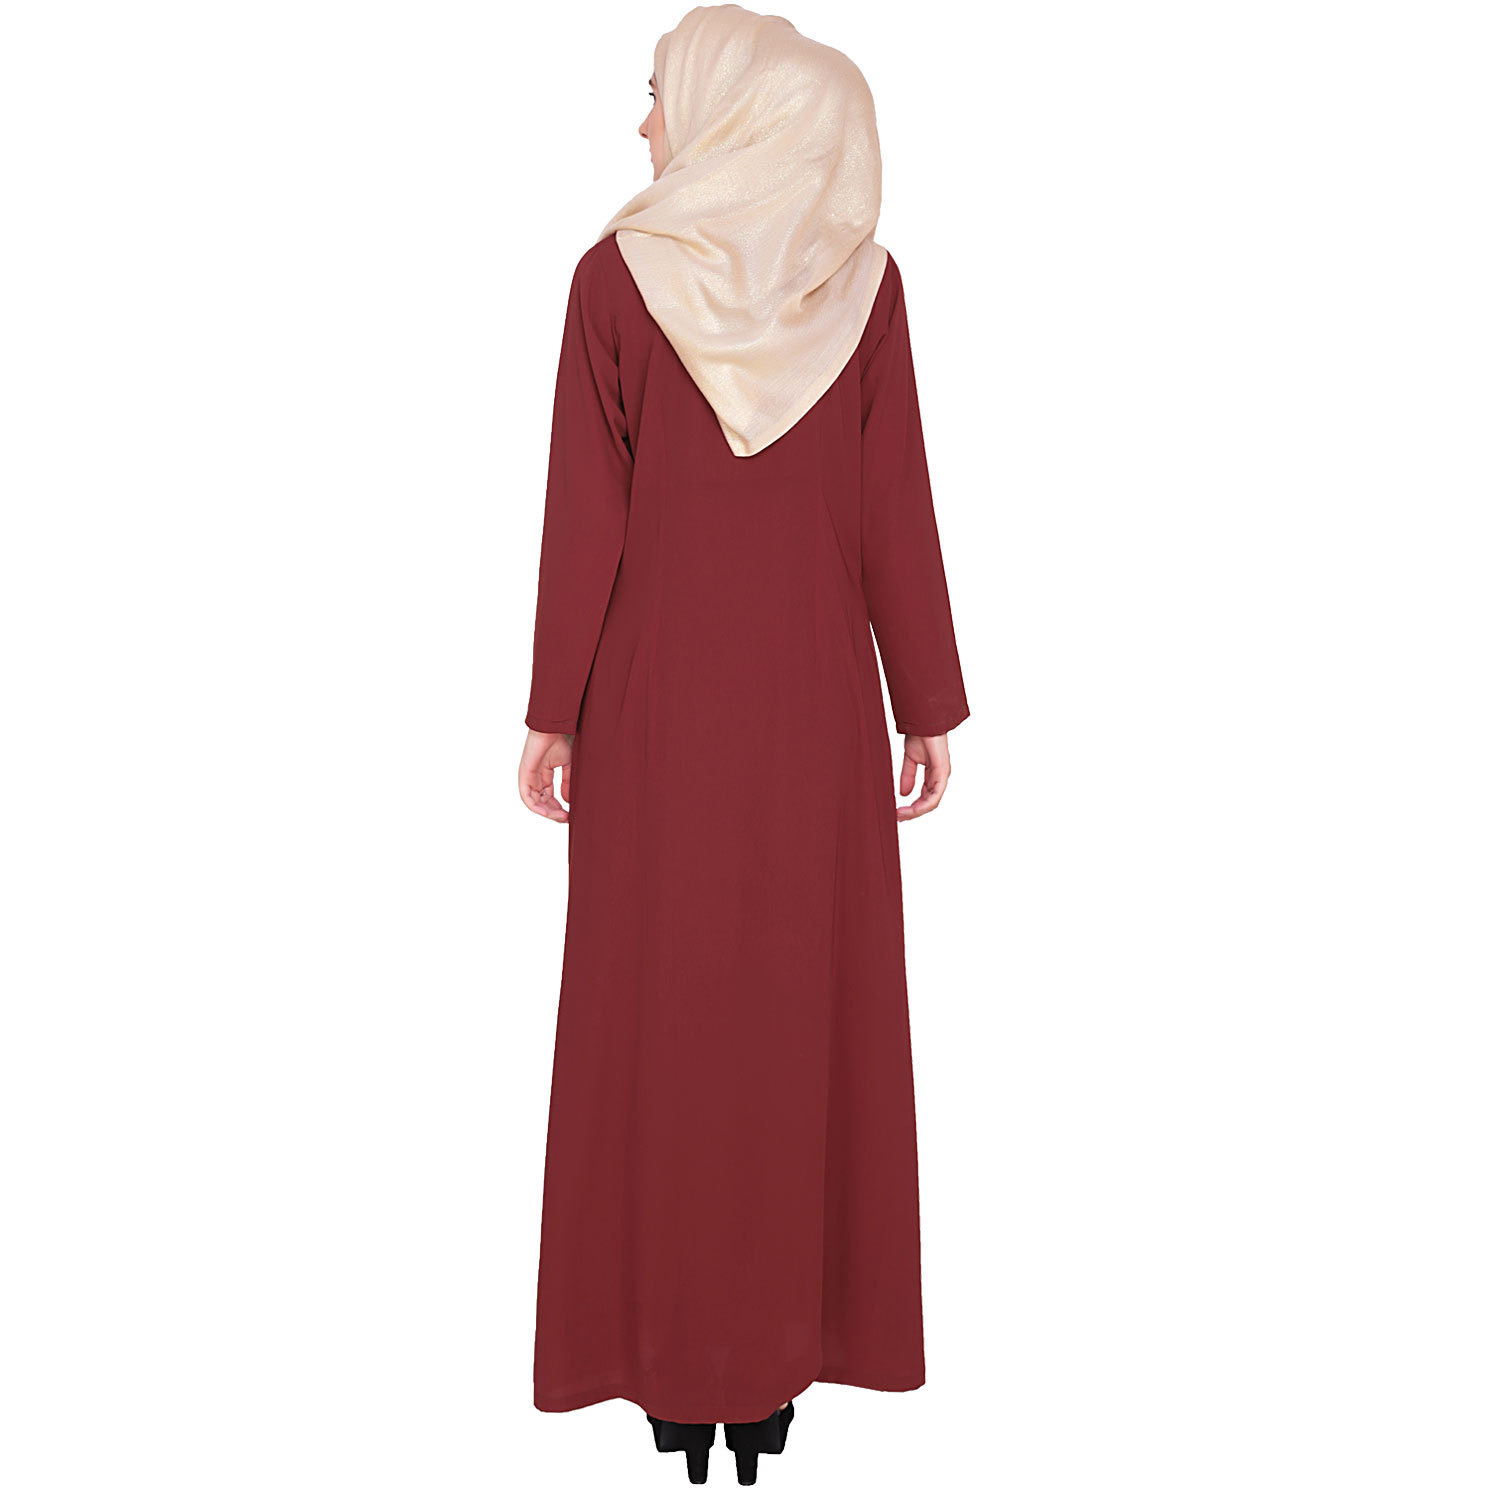 Modest Forever Classic Wine Abbaya (Size: M)